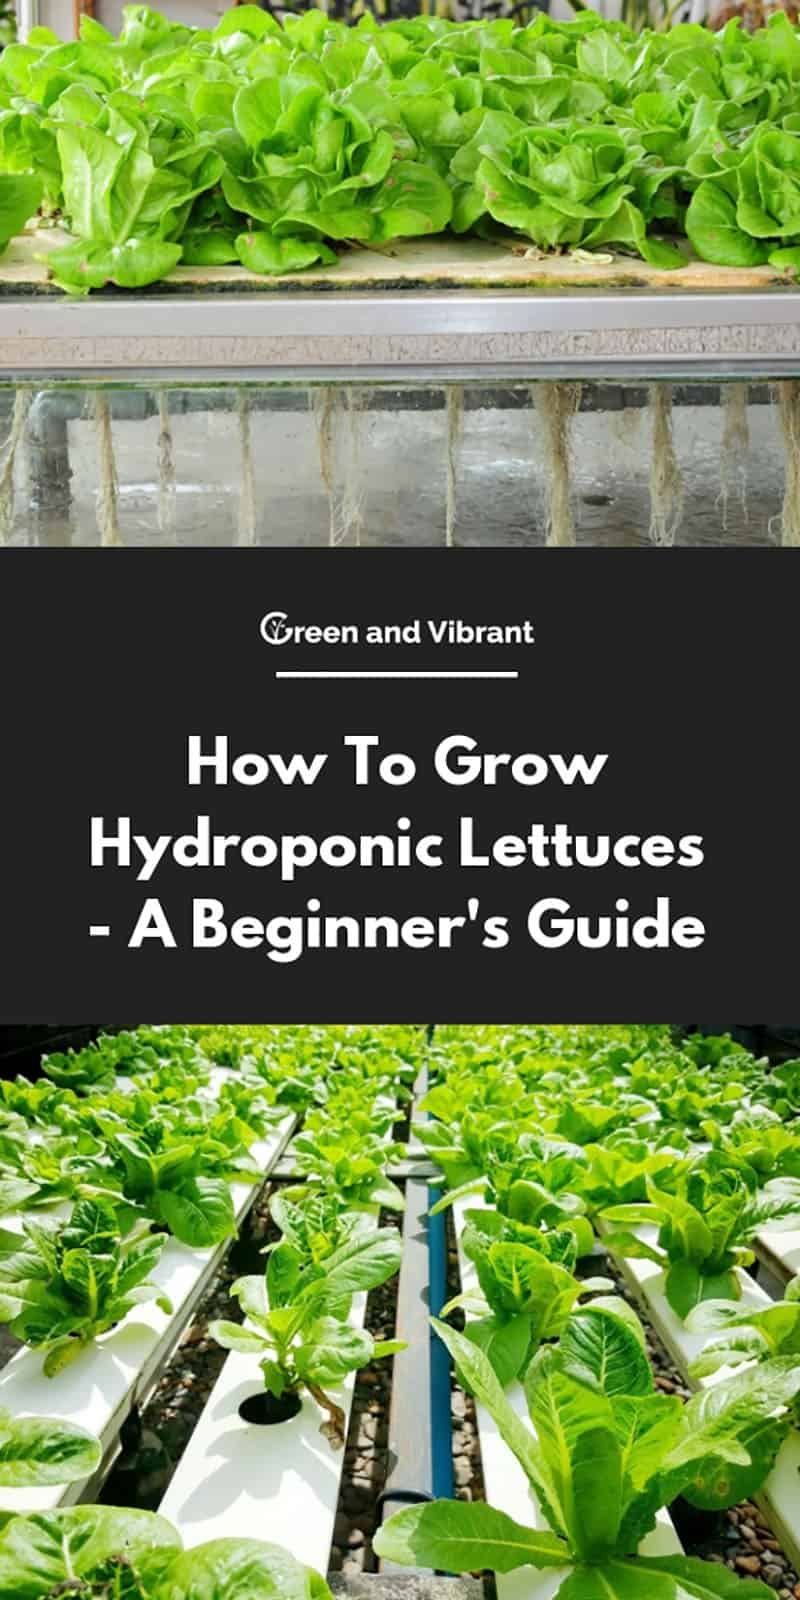 How To Grow Hydroponic Lettuces - A Beginner's Guide